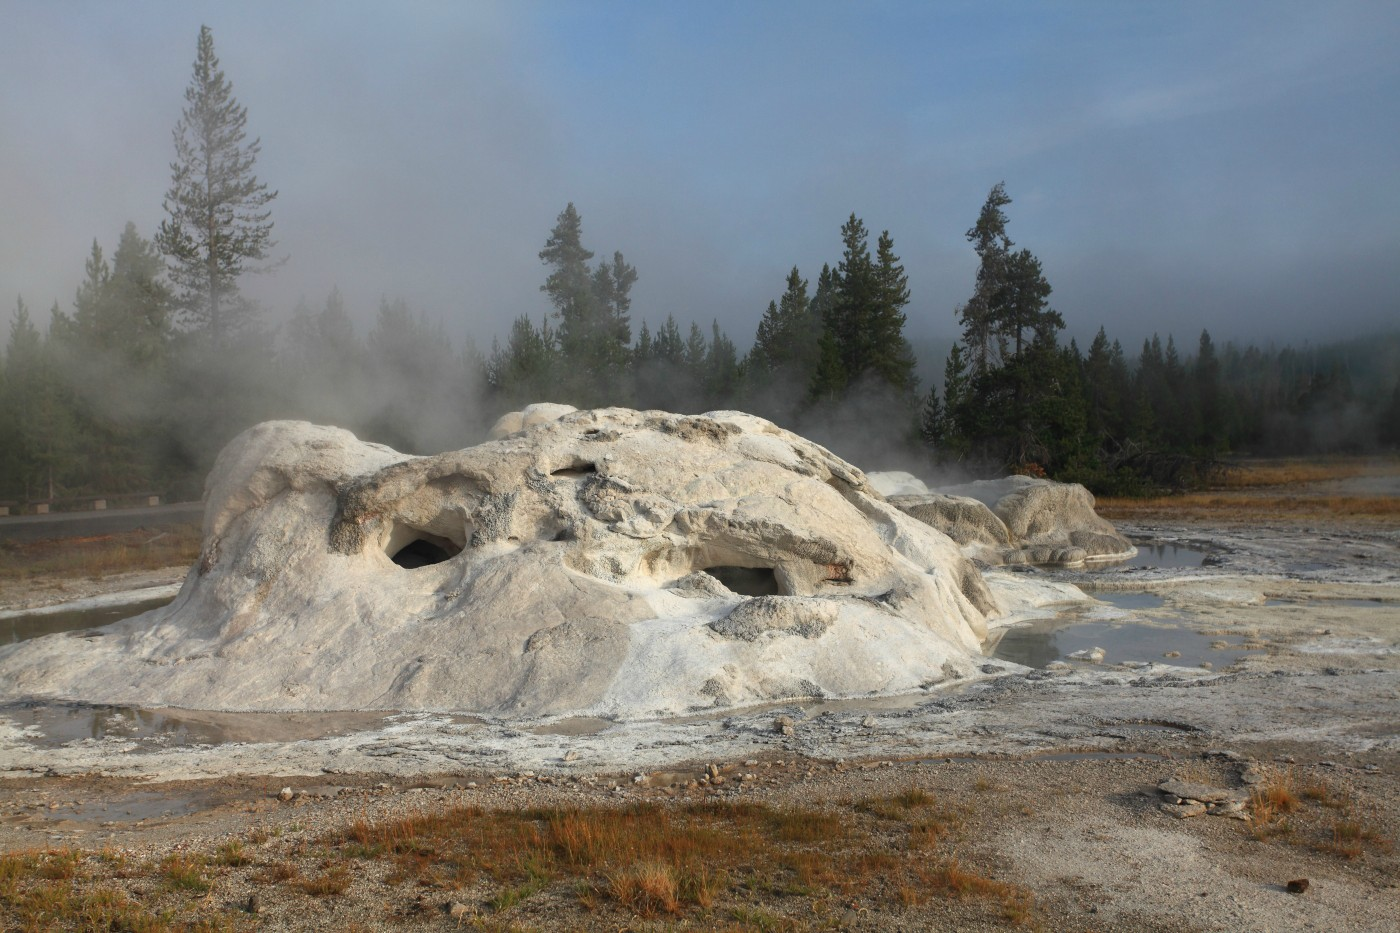 grotto geyser yellowstone national park author szulecki joshua